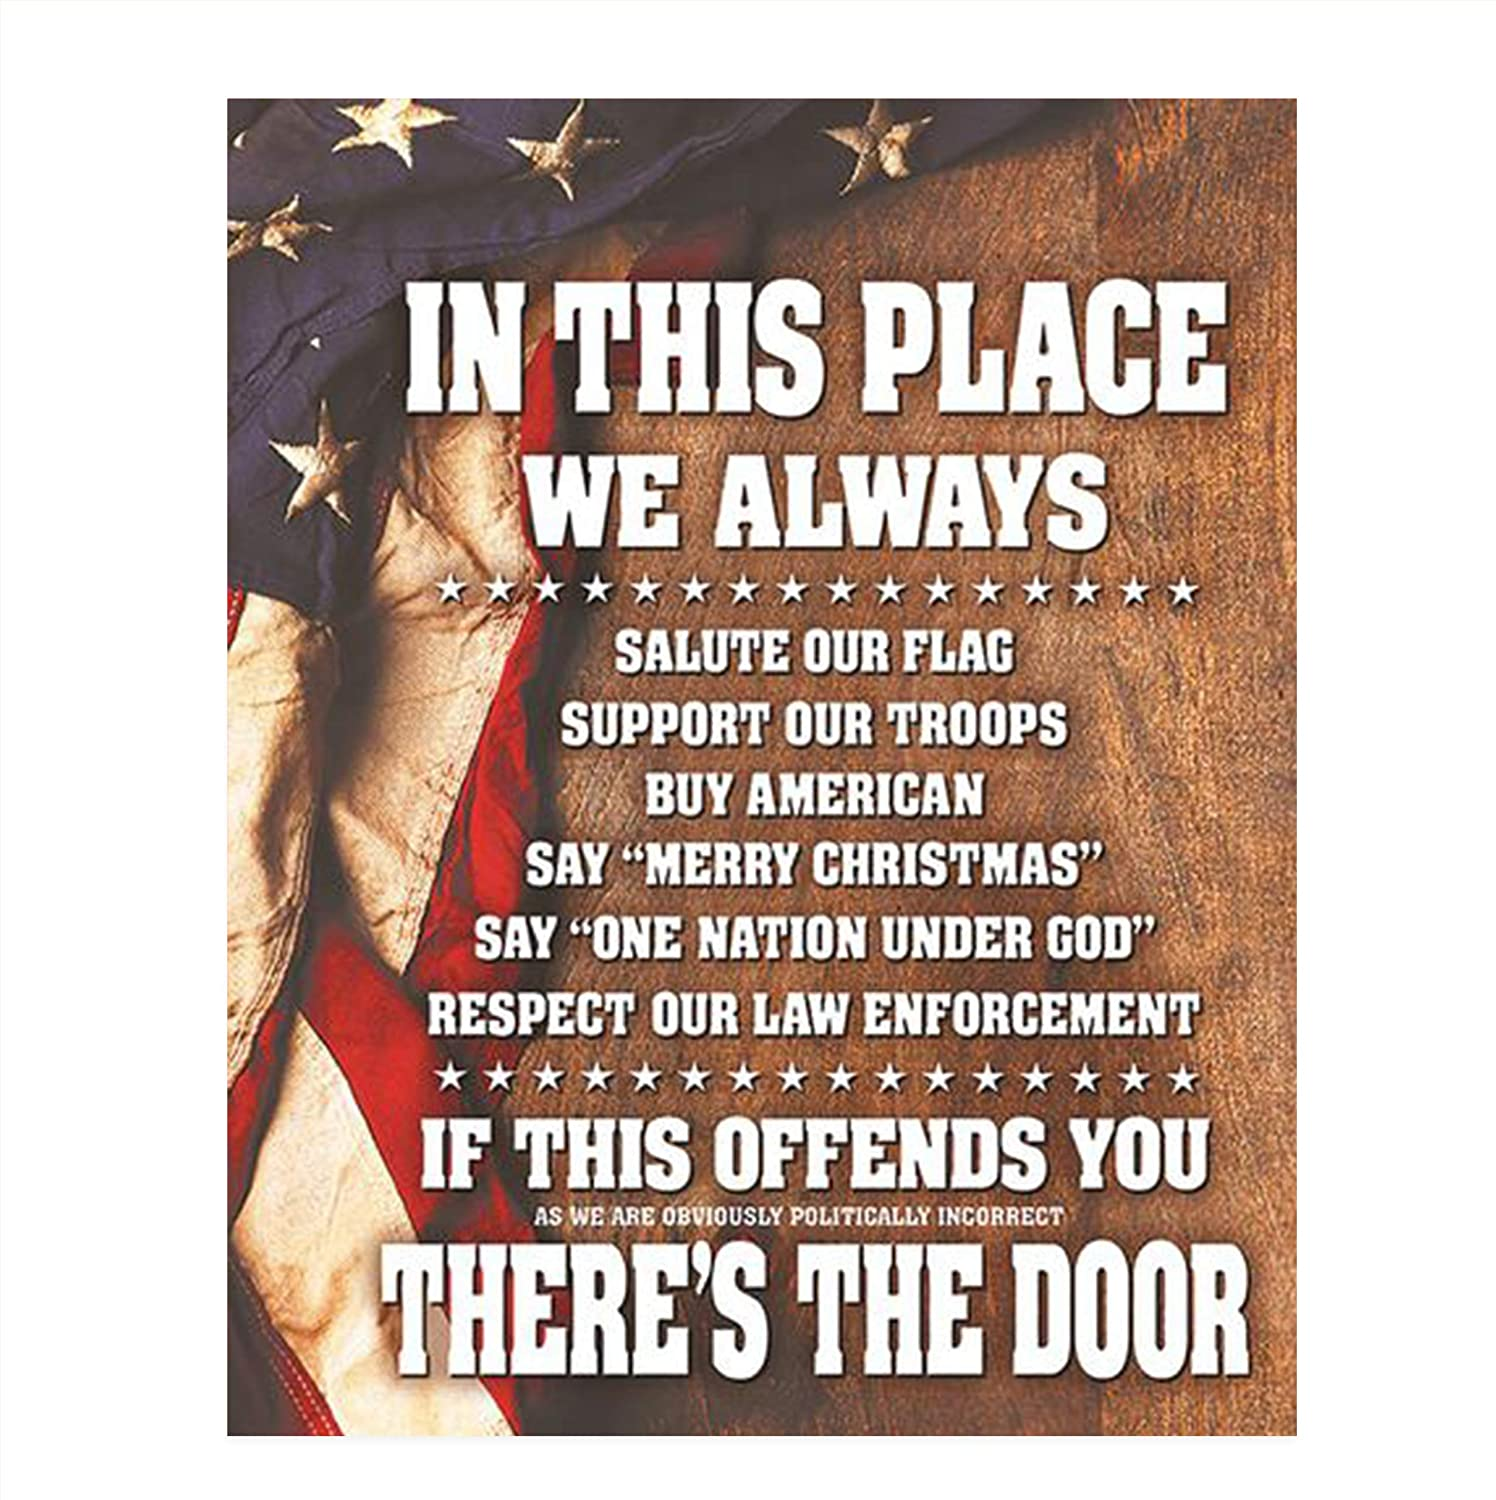 """In This Place-We Salute the Flag & Support Our Troops""- 8 x10"" Wall Decor Image-Ready To Frame. Pro-American Poster Print. Patriotic Decor for Home-Office-Garage-Bar. Show Your Love of USA!"